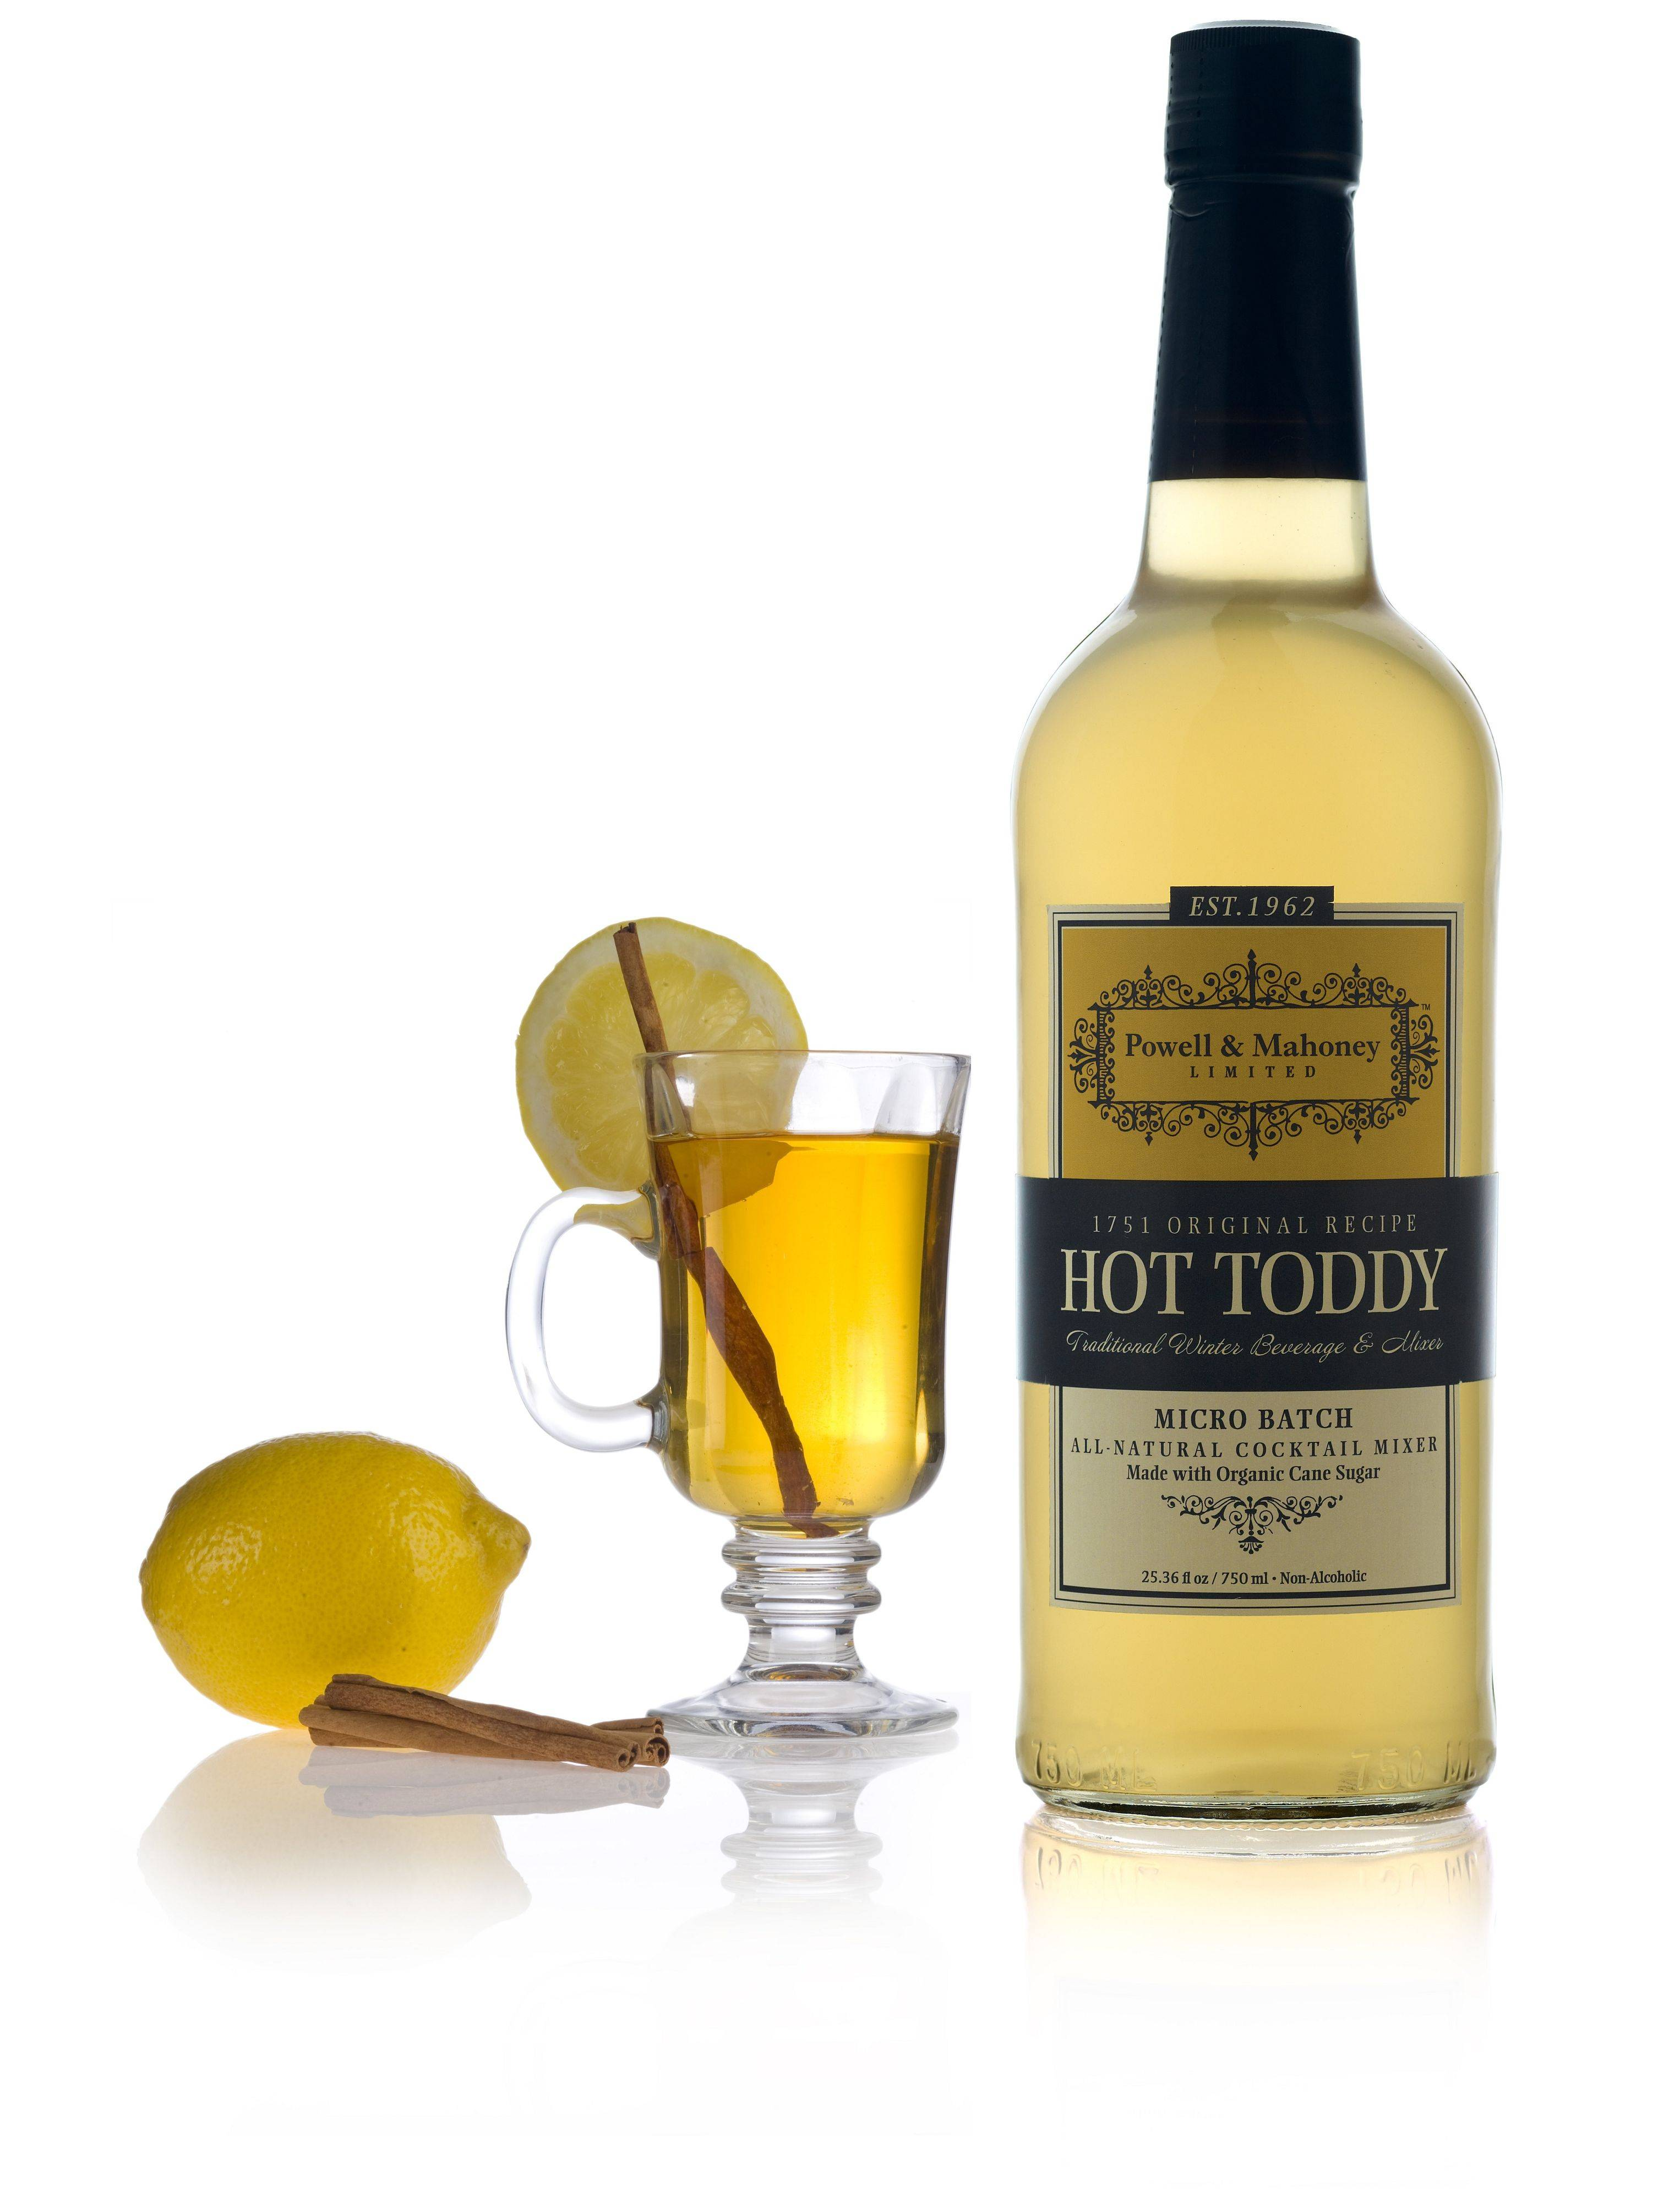 Hot Toddy Vintage Cocktail Mixer